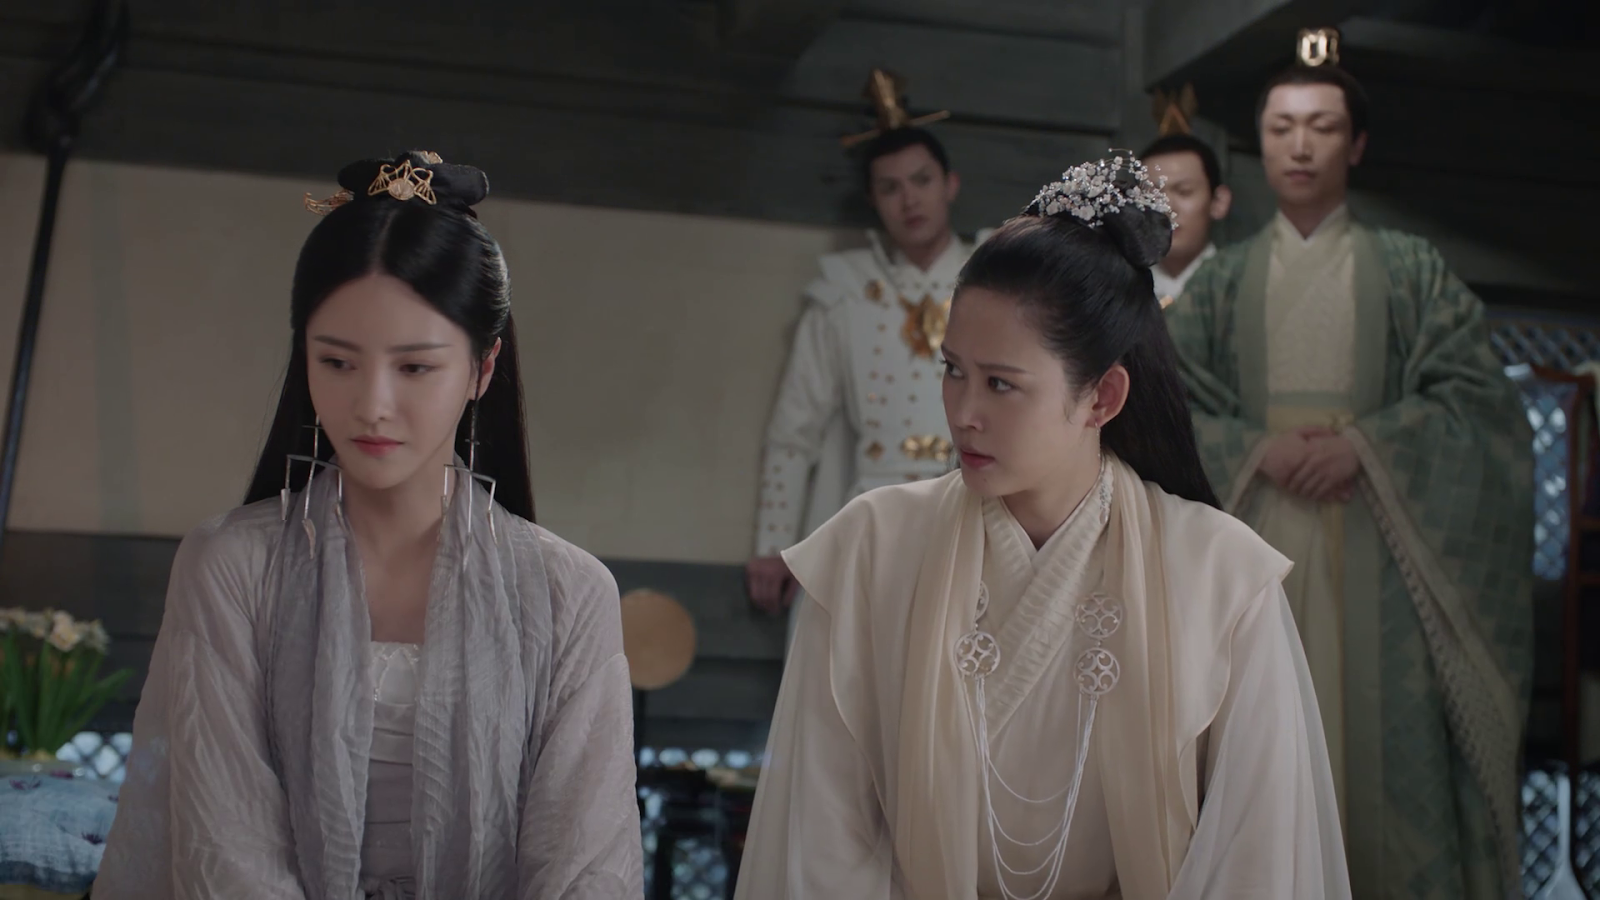 Love & Destiny 三生三世宸汐缘 - Episode 11 (Recap)